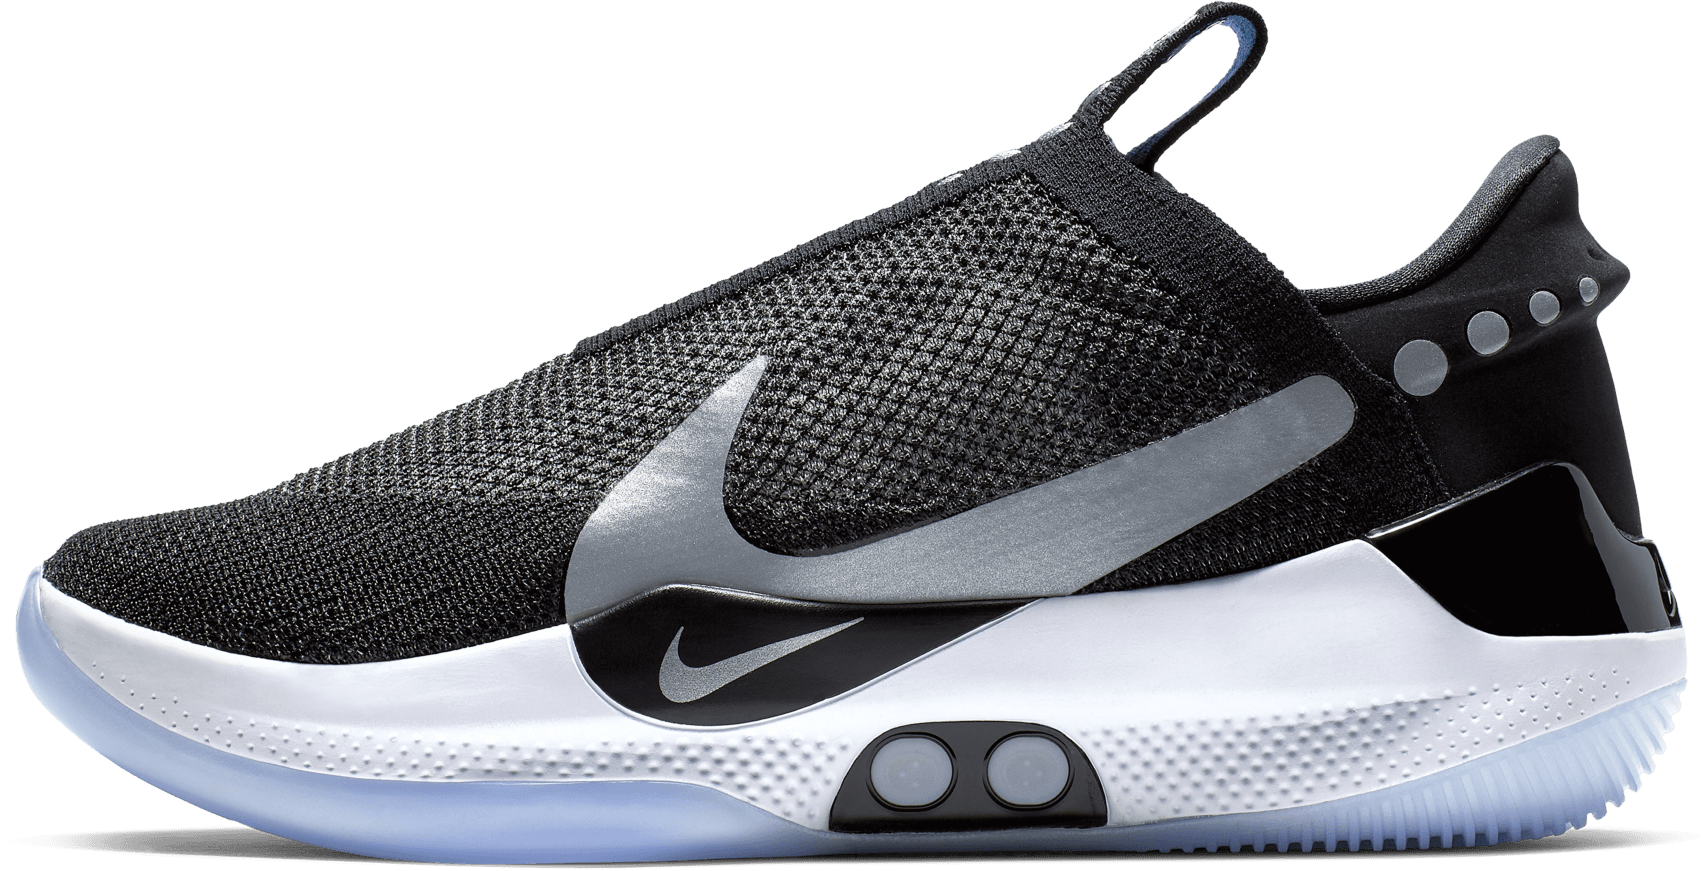 Nike Adapt BB Performance Review